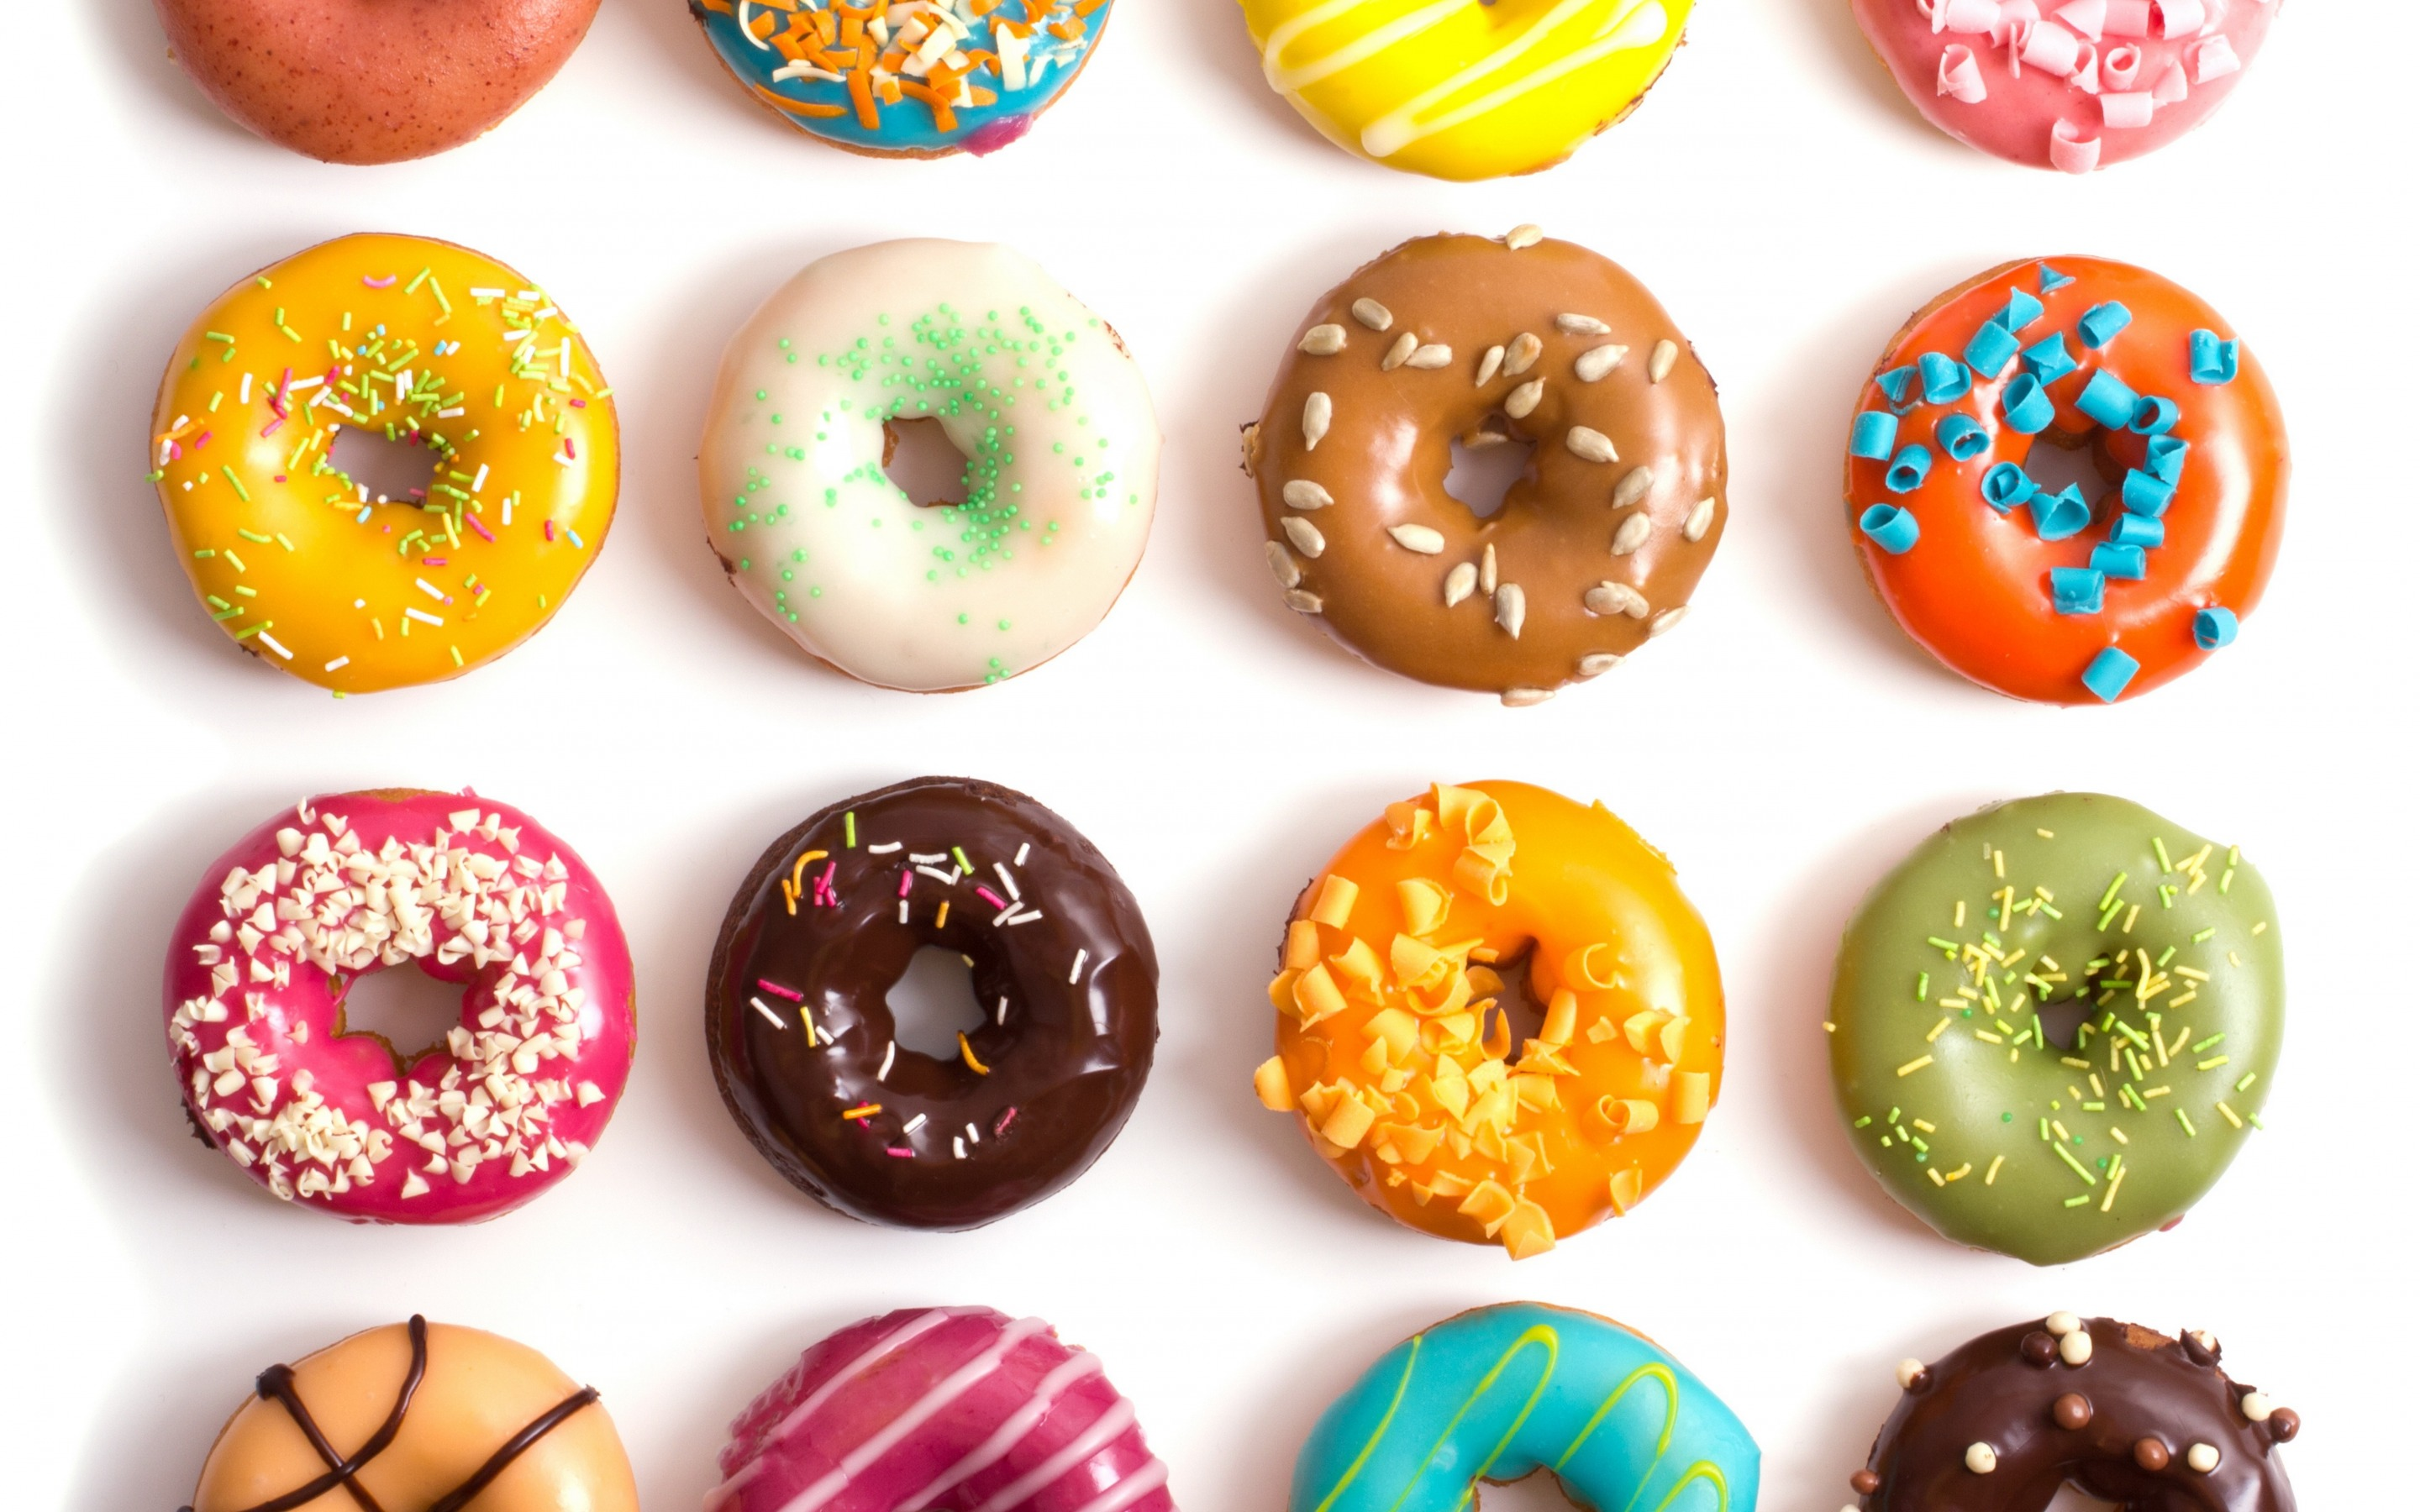 Colorful Food Wallpaper Free Download: Donuts Wallpapers High Quality